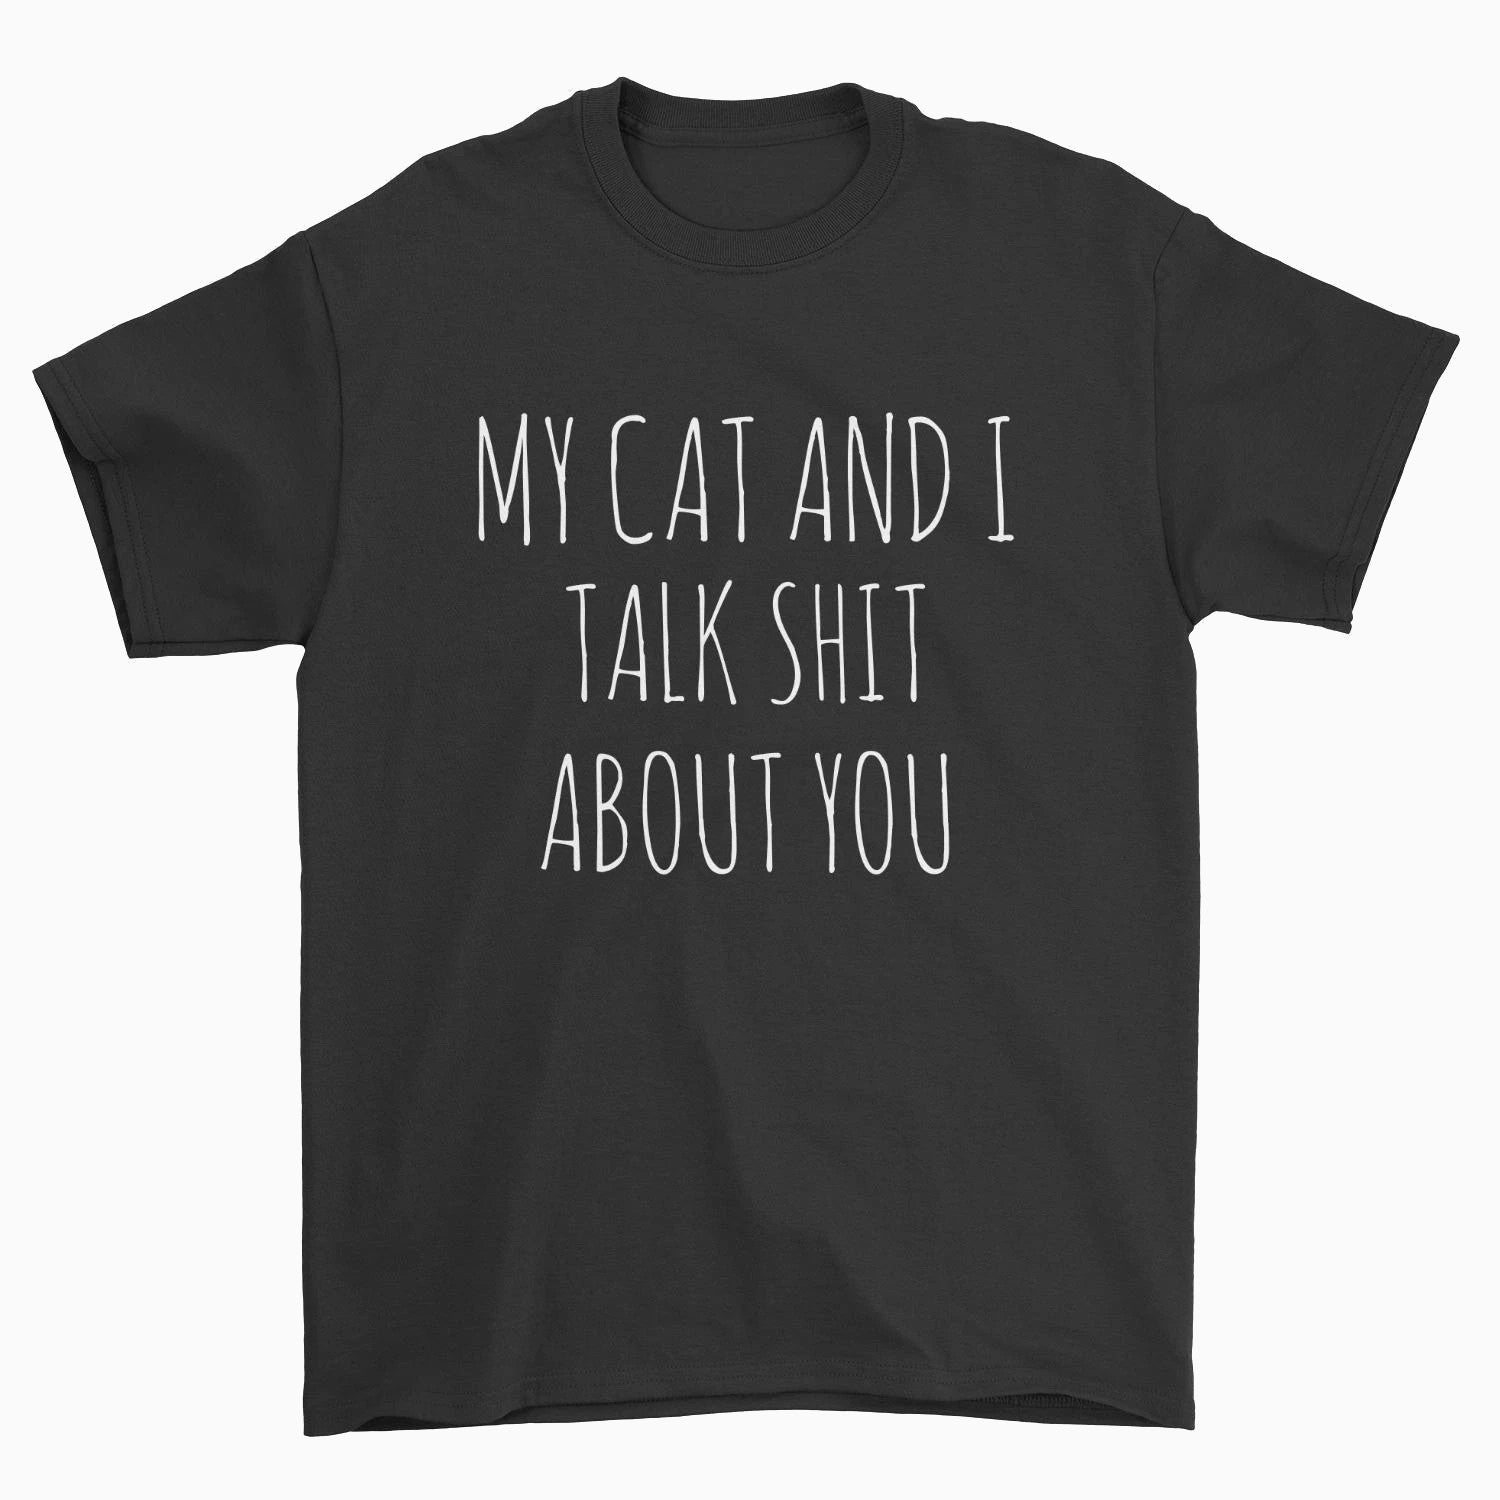 My Cat and I Talk Sh!t About You T-Shirt - Pawsome Couture